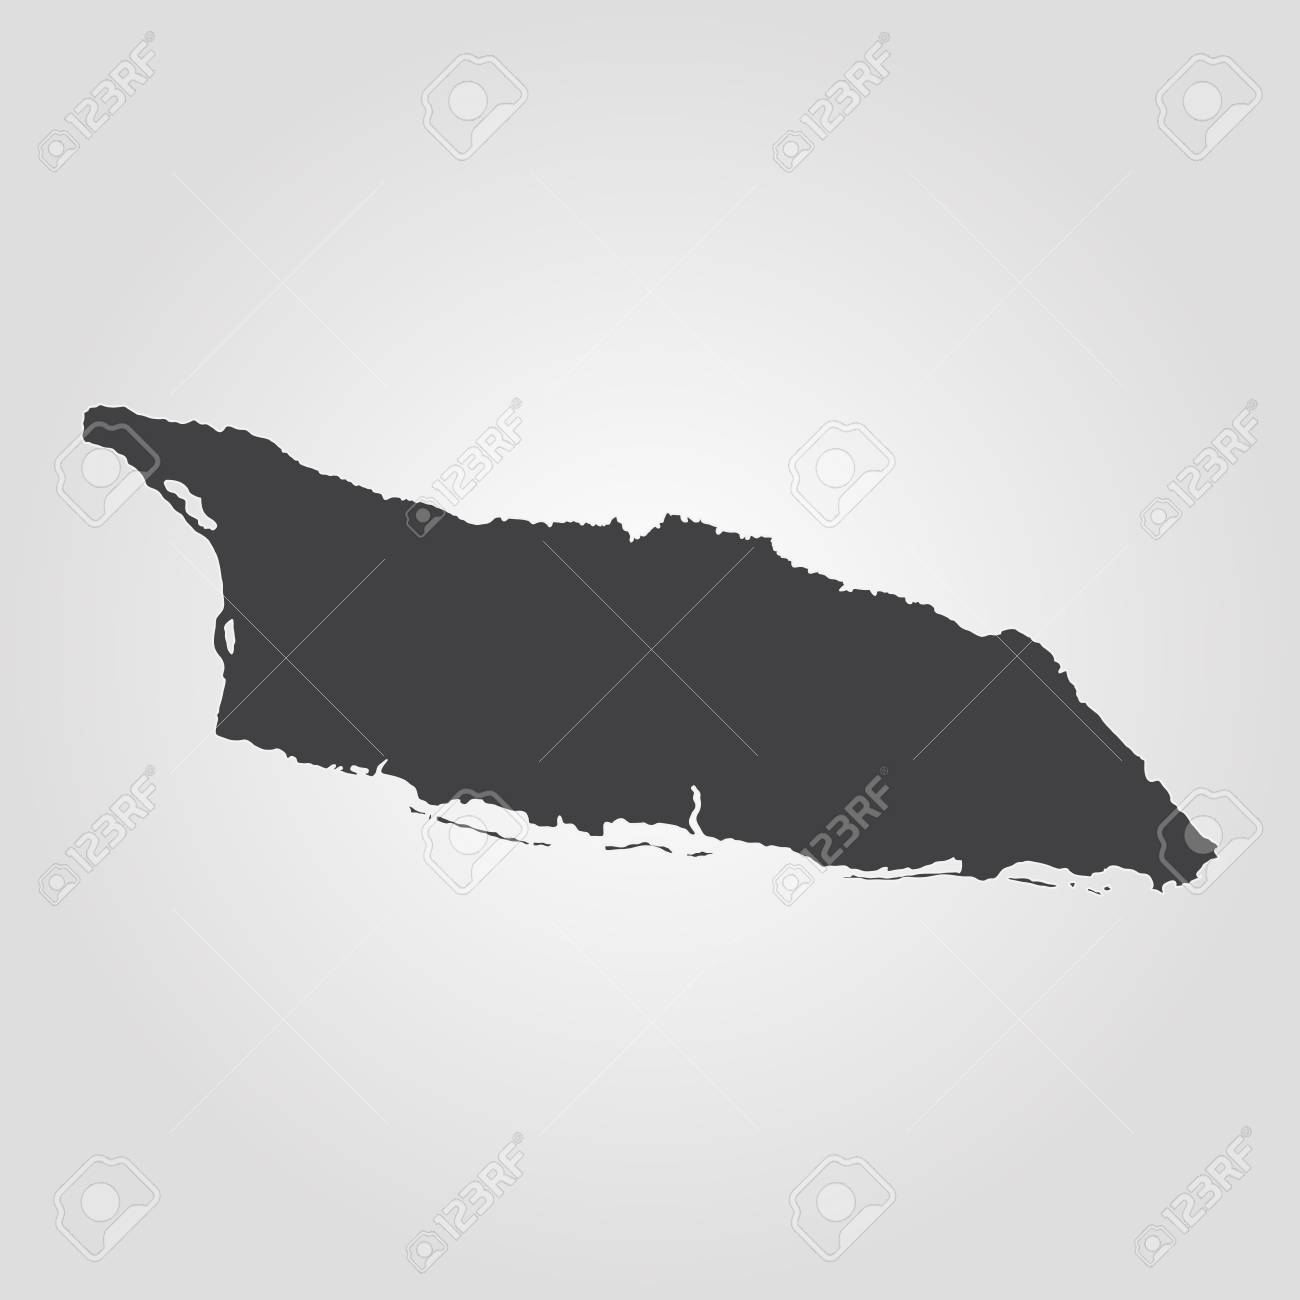 Map Of Aruba. Vector Illustration. World Map Royalty Free Cliparts ...